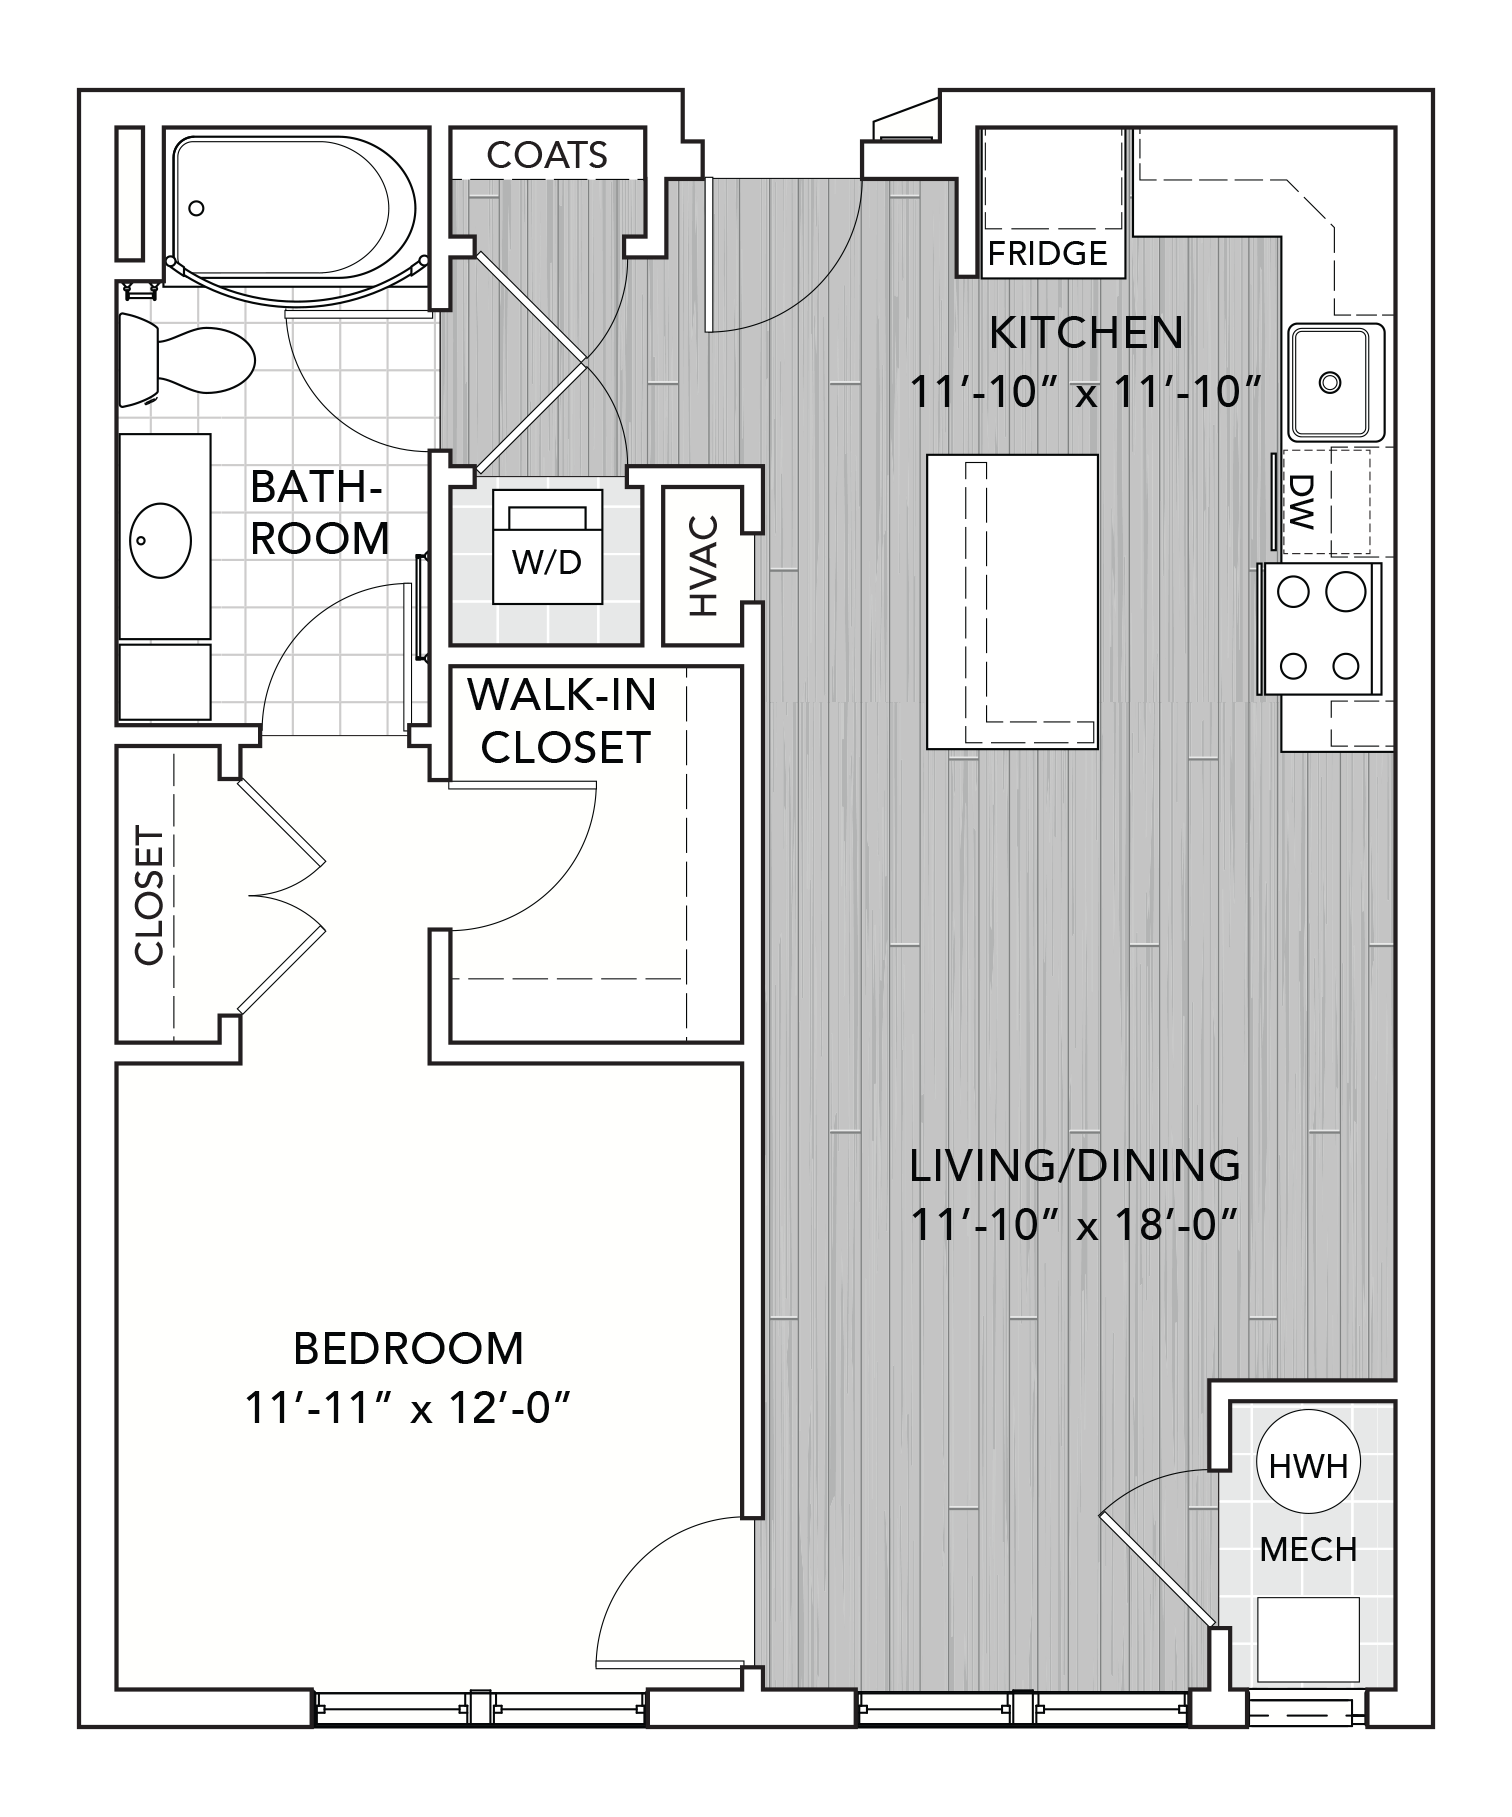 P0655013 parksquare a2 774 2 floorplan